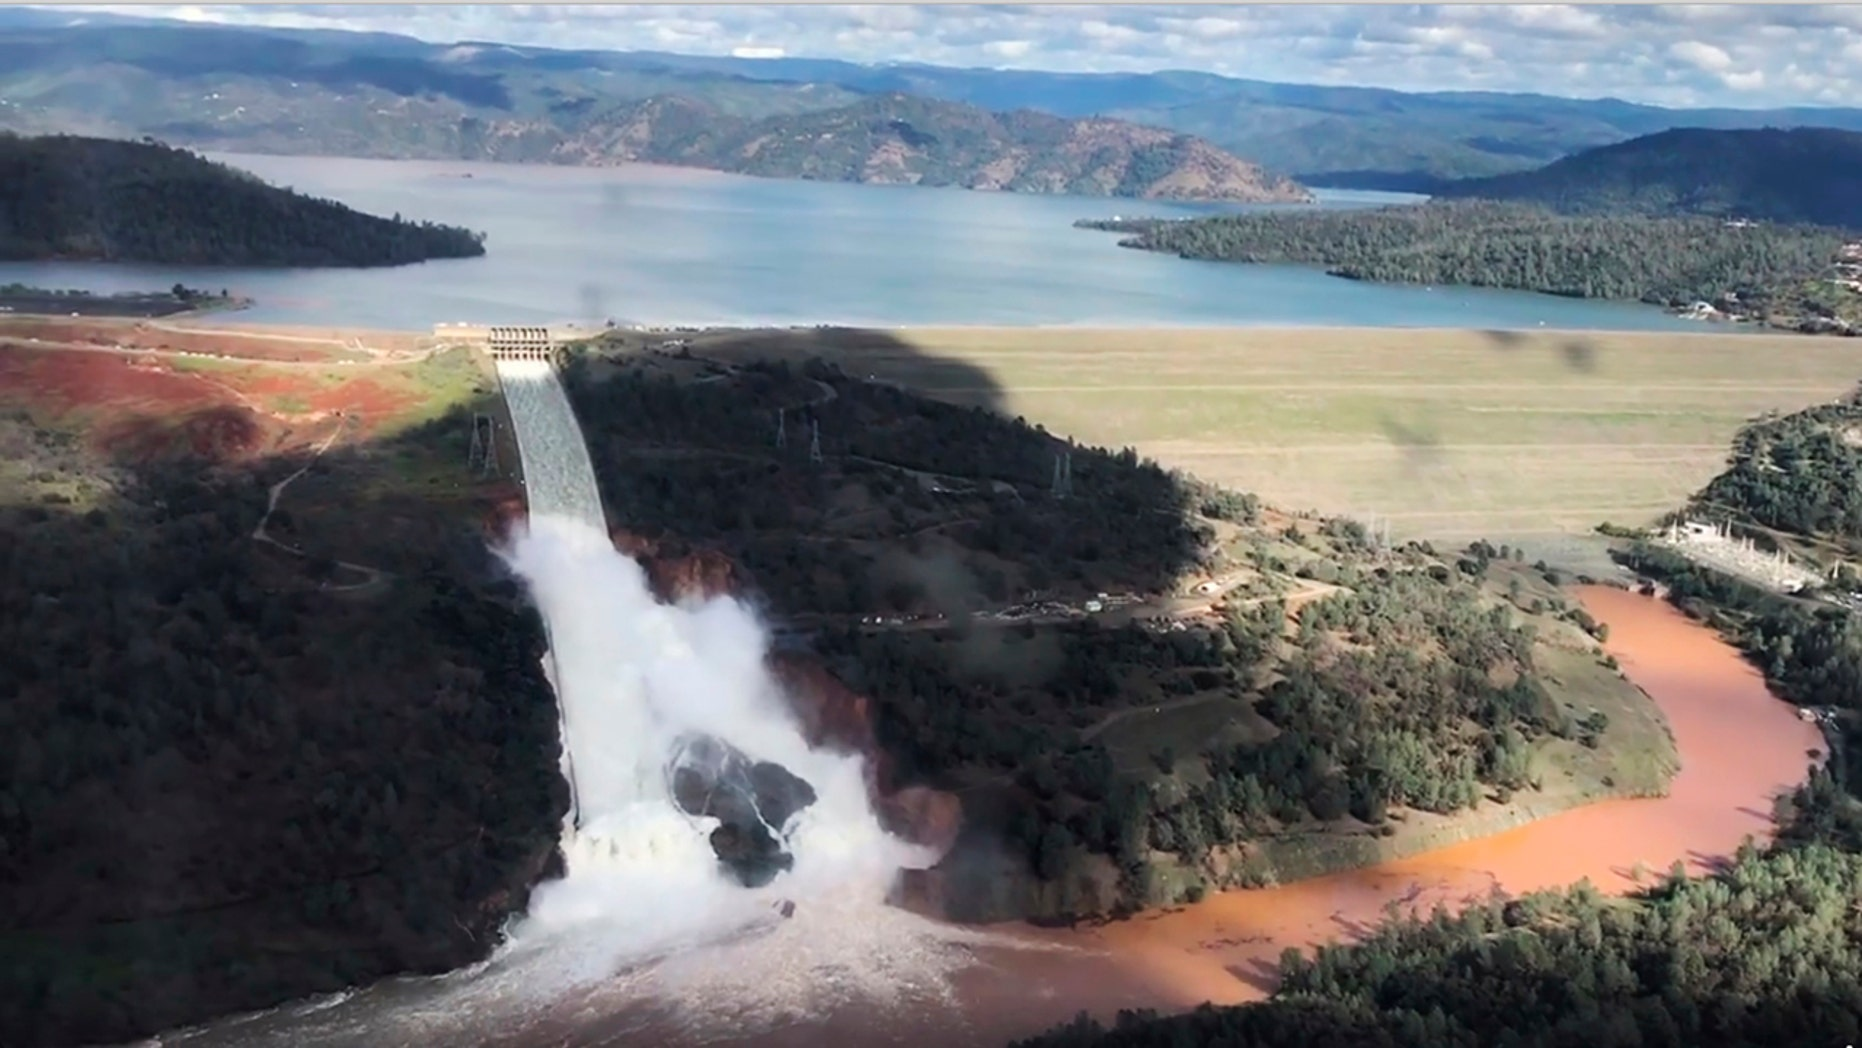 Feb. 10, 2017: This image from video provided by the office of Assemblyman Brian Dahle shows water flowing over an emergency spillway of the Oroville Dam in Oroville, Calif., during a helicopter tour by the Butte County Sheriff's office.